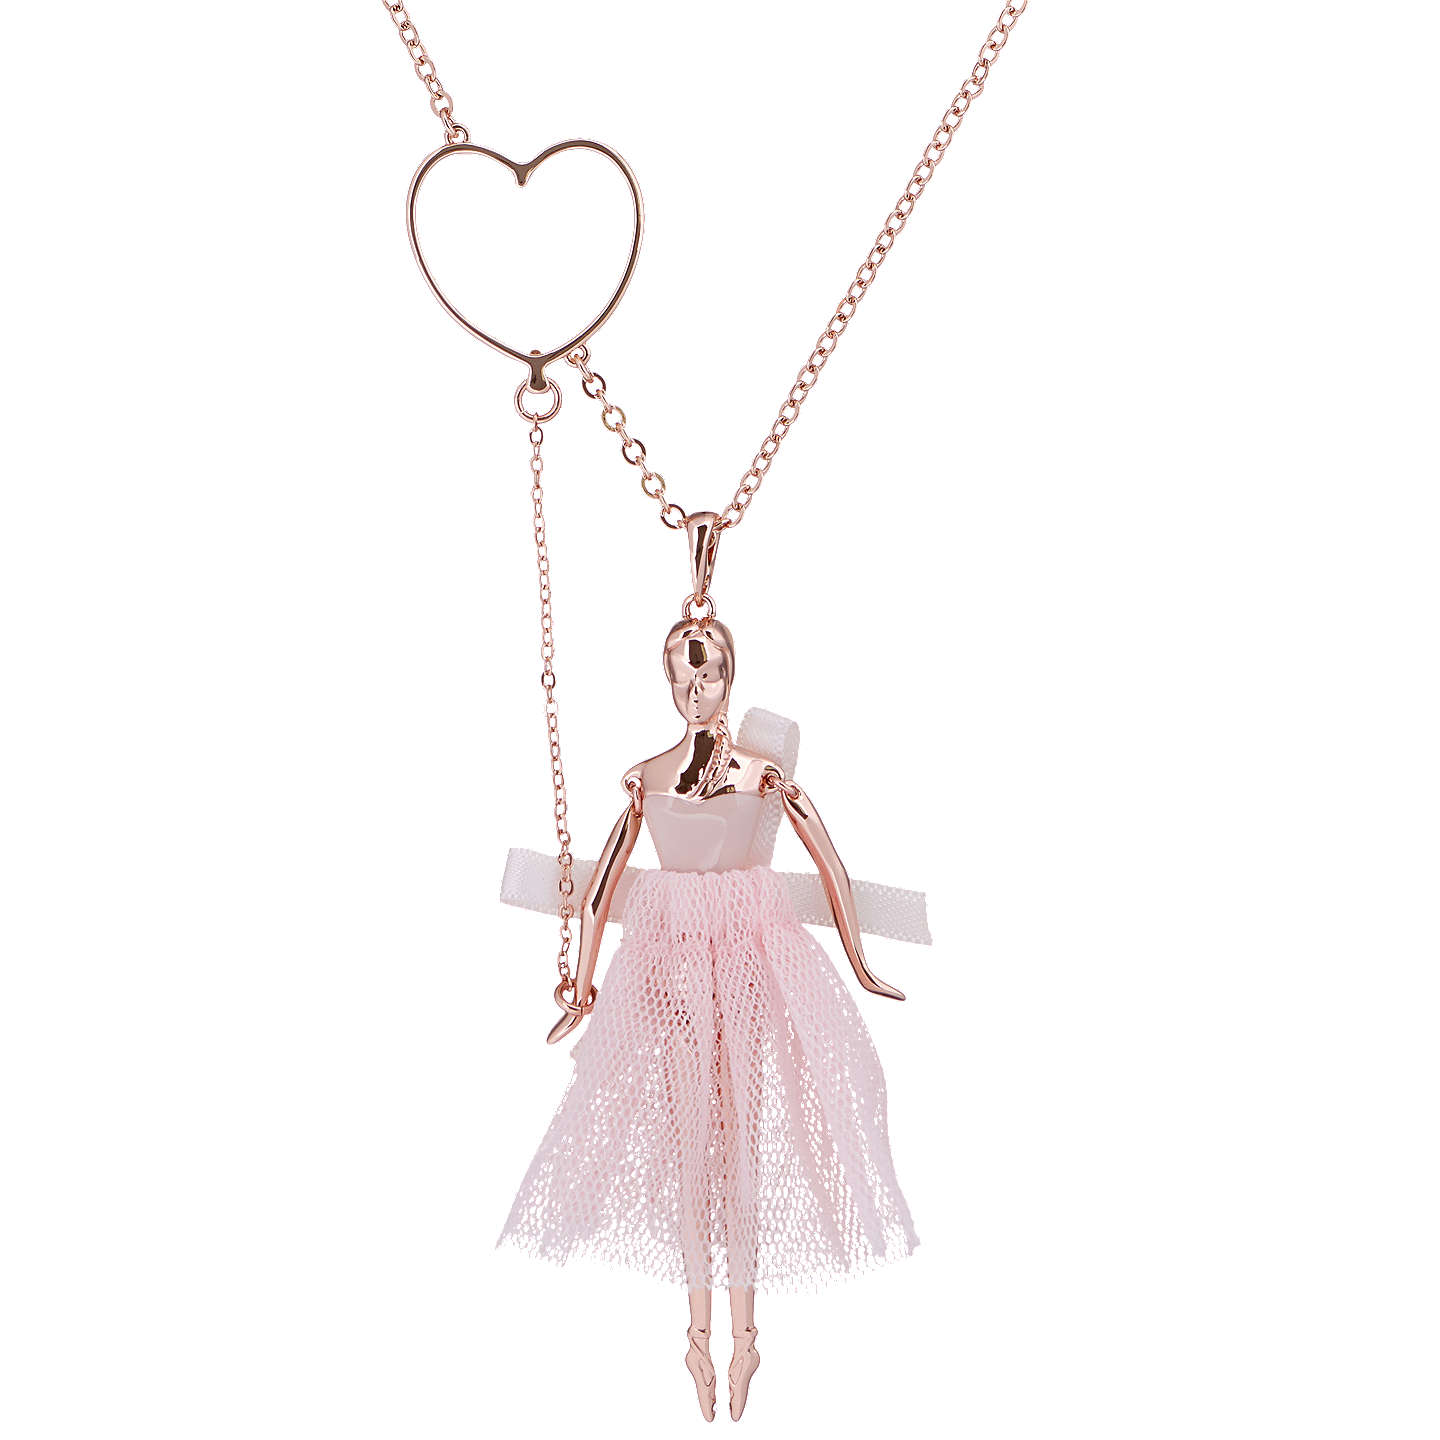 Ted baker bevlee balloon ballerina pendant necklace rose gold at buyted baker bevlee balloon ballerina pendant necklace rose gold online at johnlewis mozeypictures Image collections